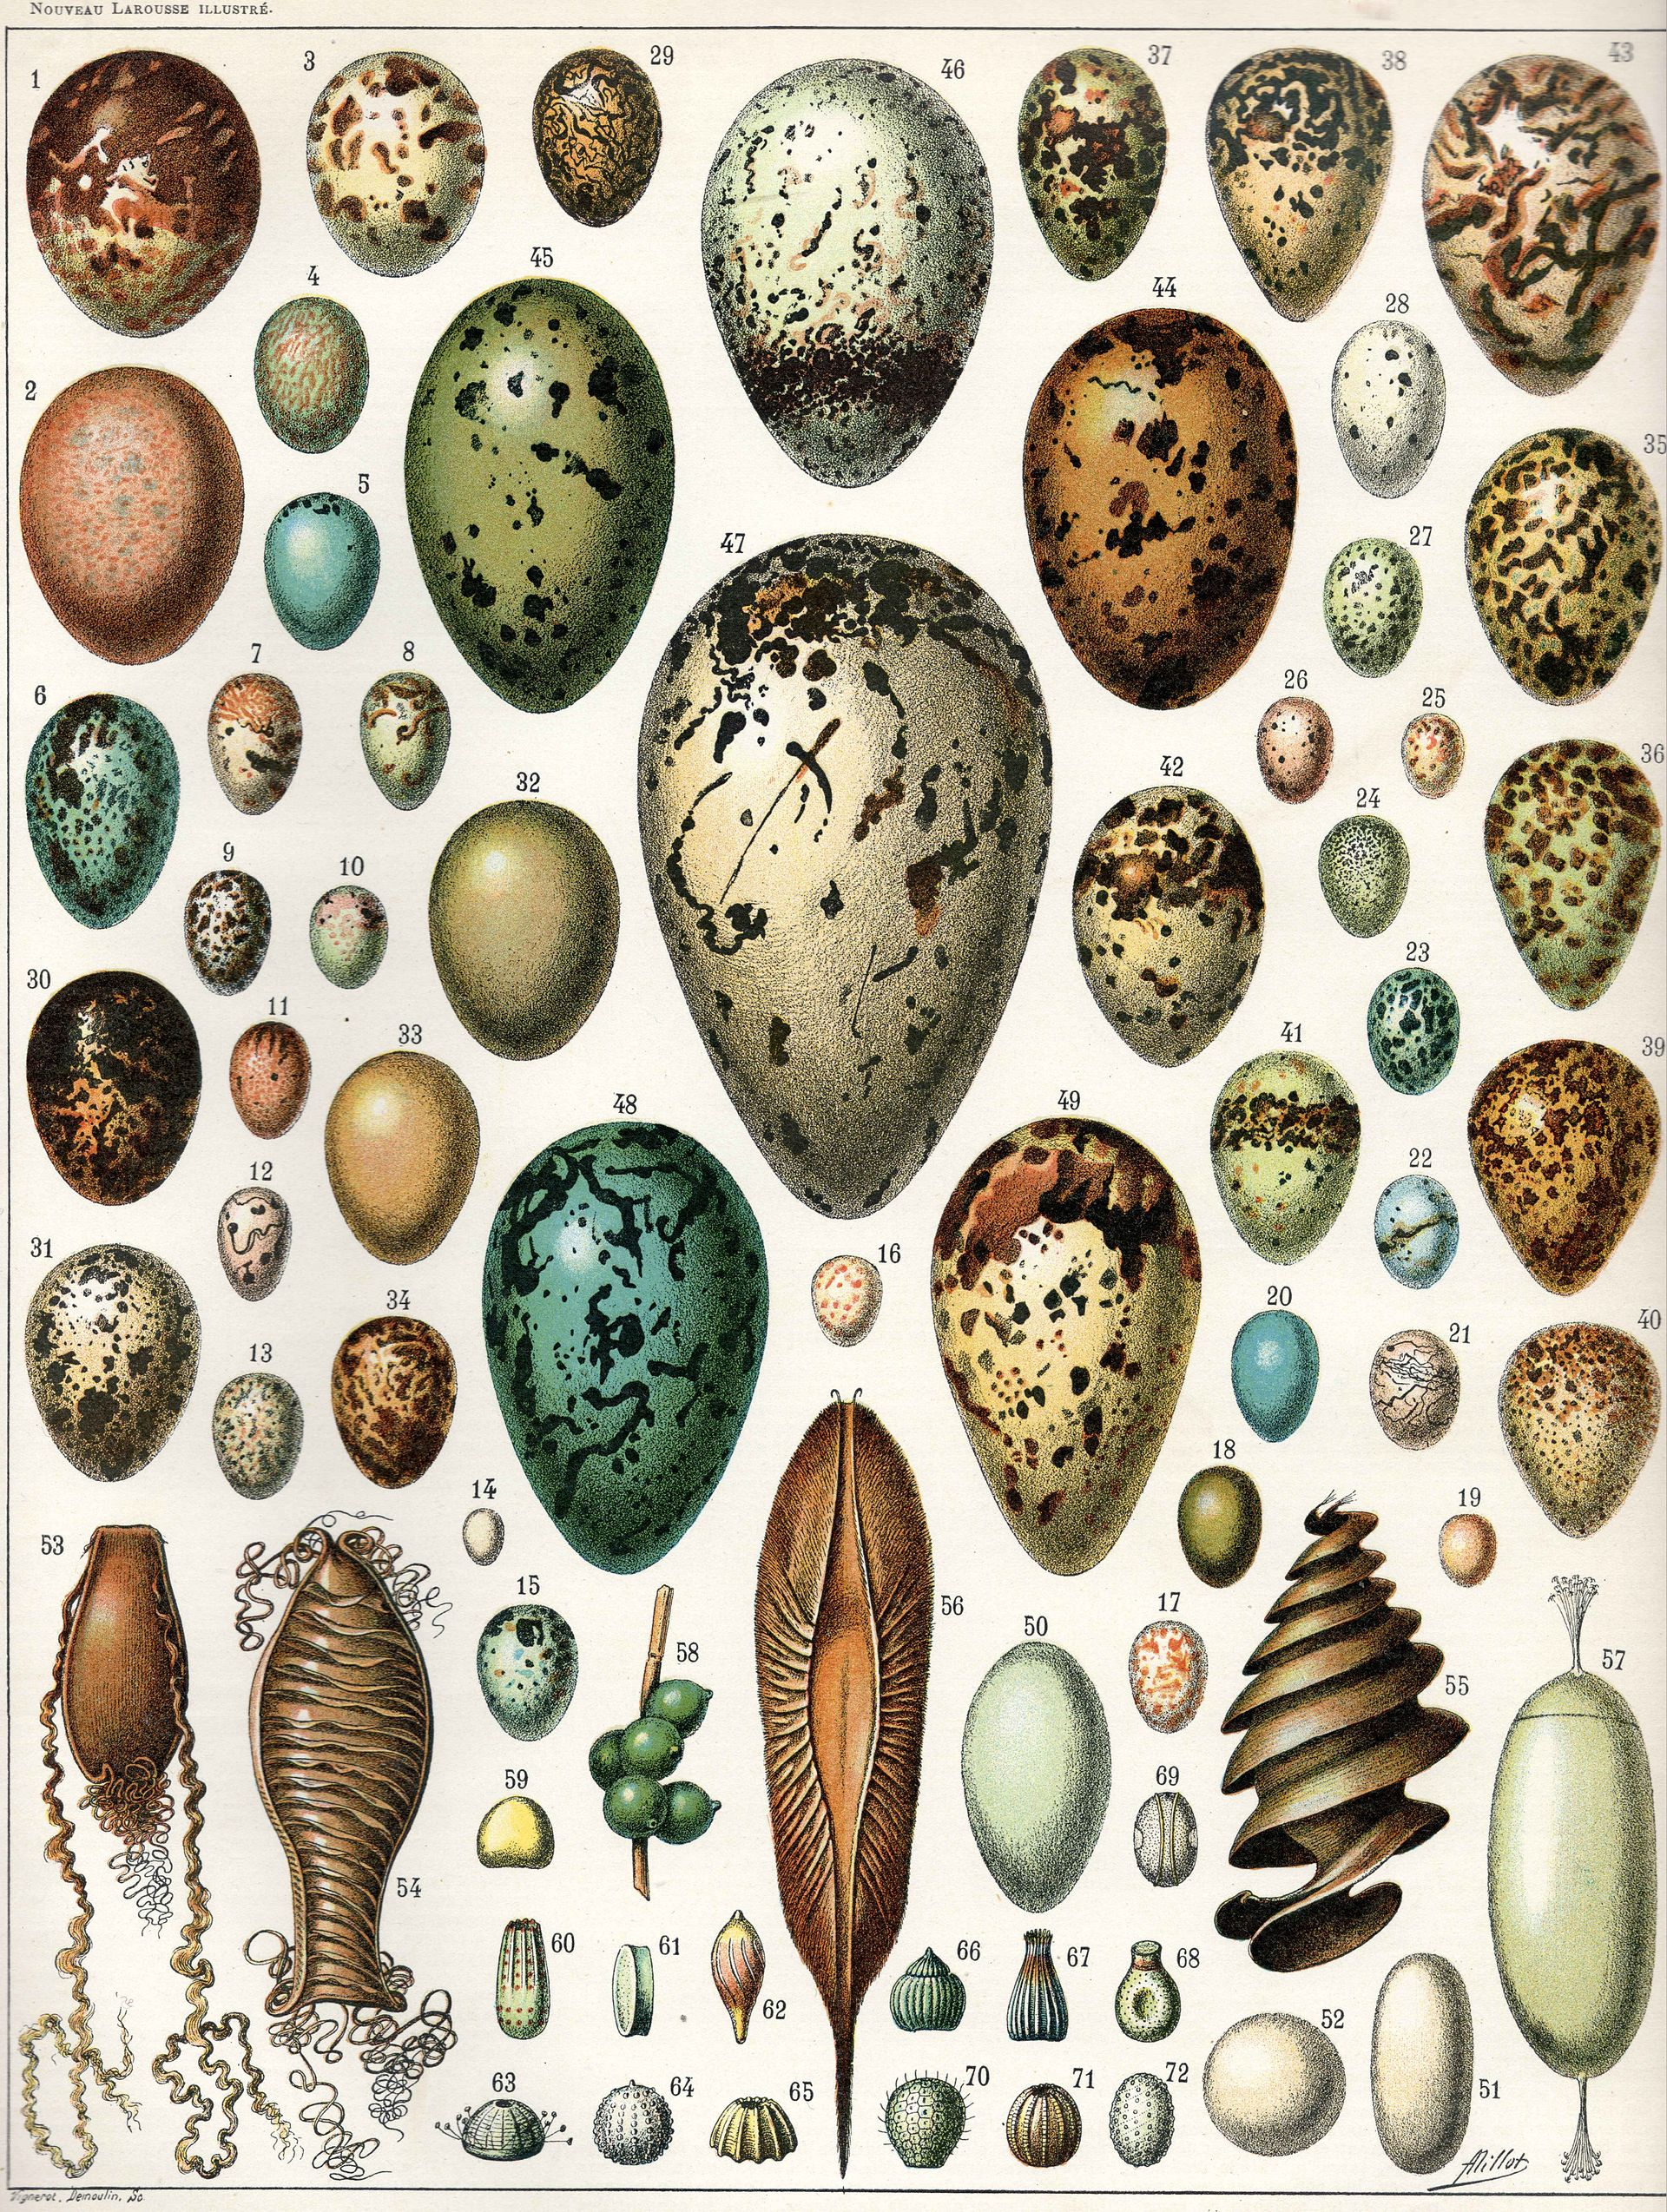 Beautiful rendering of 72 kinds of eggs - Nouveau Larousse Illustré , edited by  Claude Augé , published in Paris by Librarie Larousse 1897-1904, this illustration from vol. 6 p. 473 - as seen on Wikipedia!